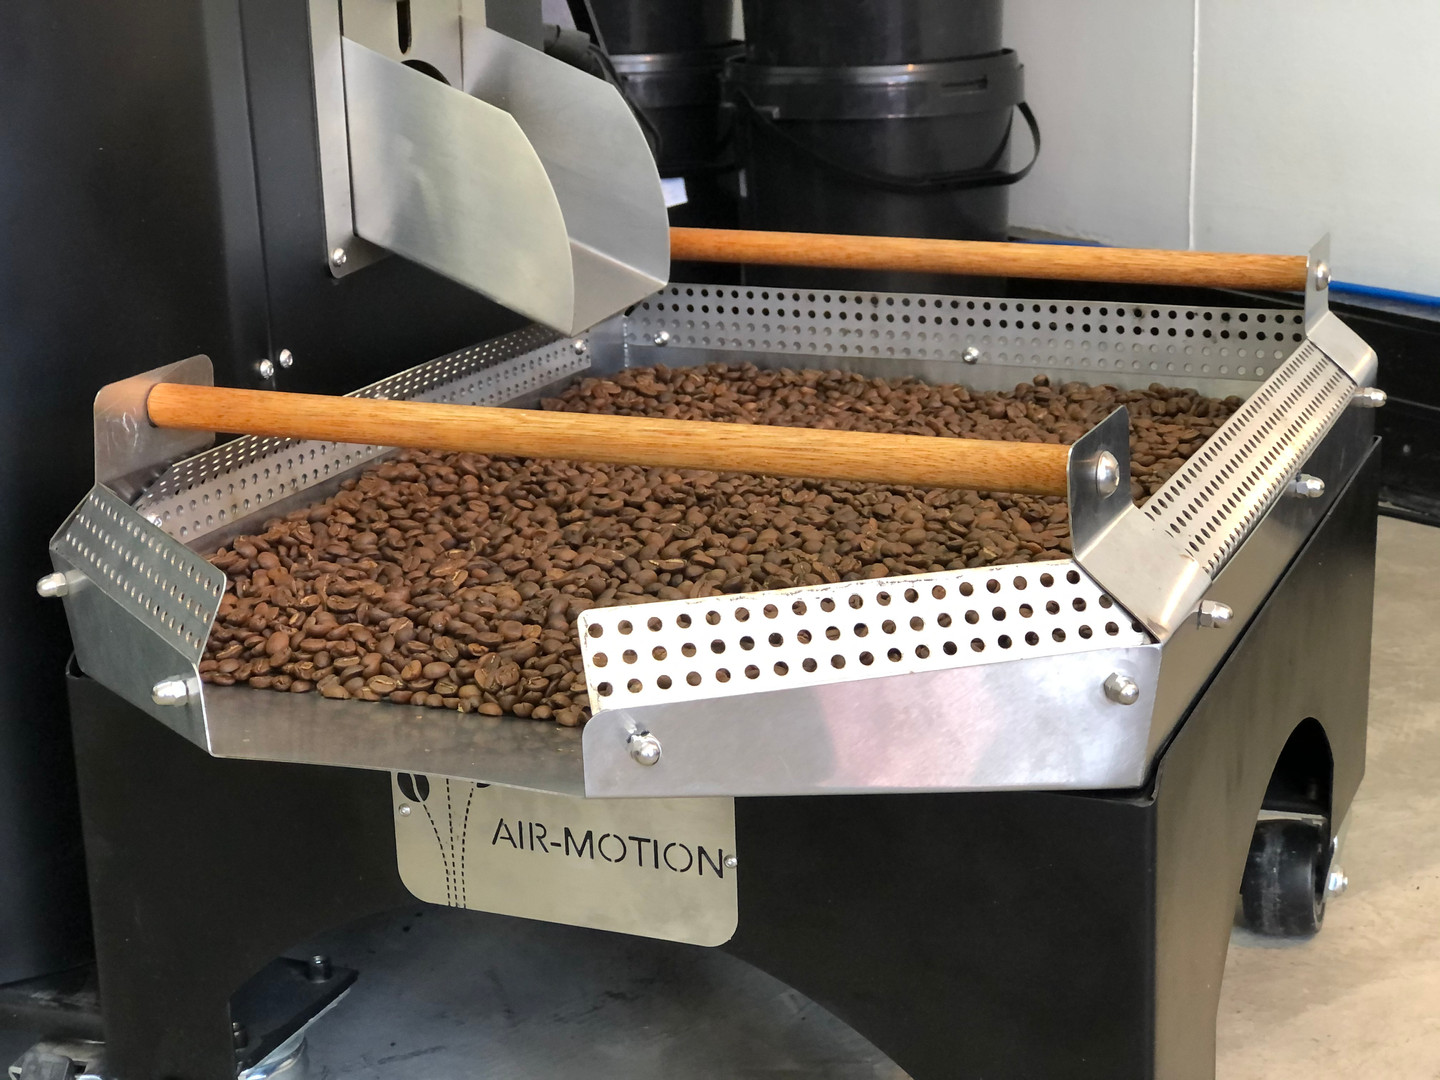 Cooling Tray - 3kg Air-Motion Coffee Roaster